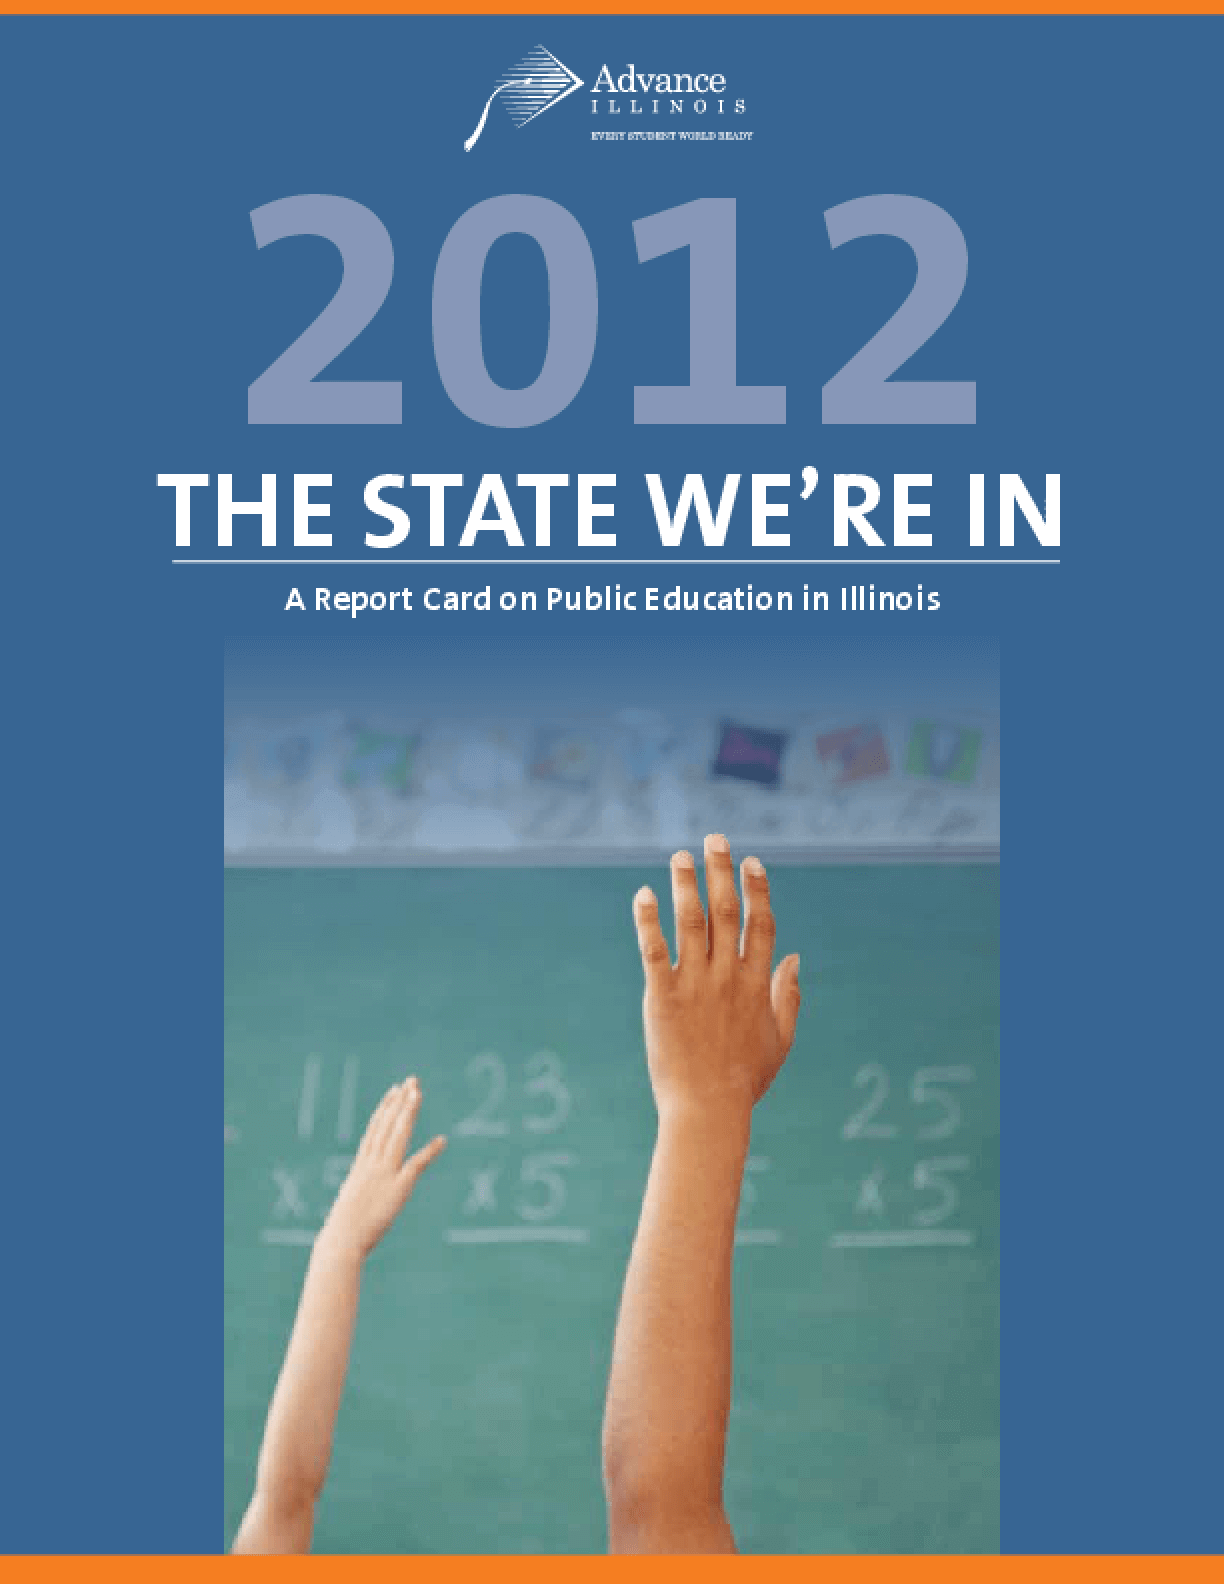 The State We're In: A Report Card on Public Education in Illinois 2012